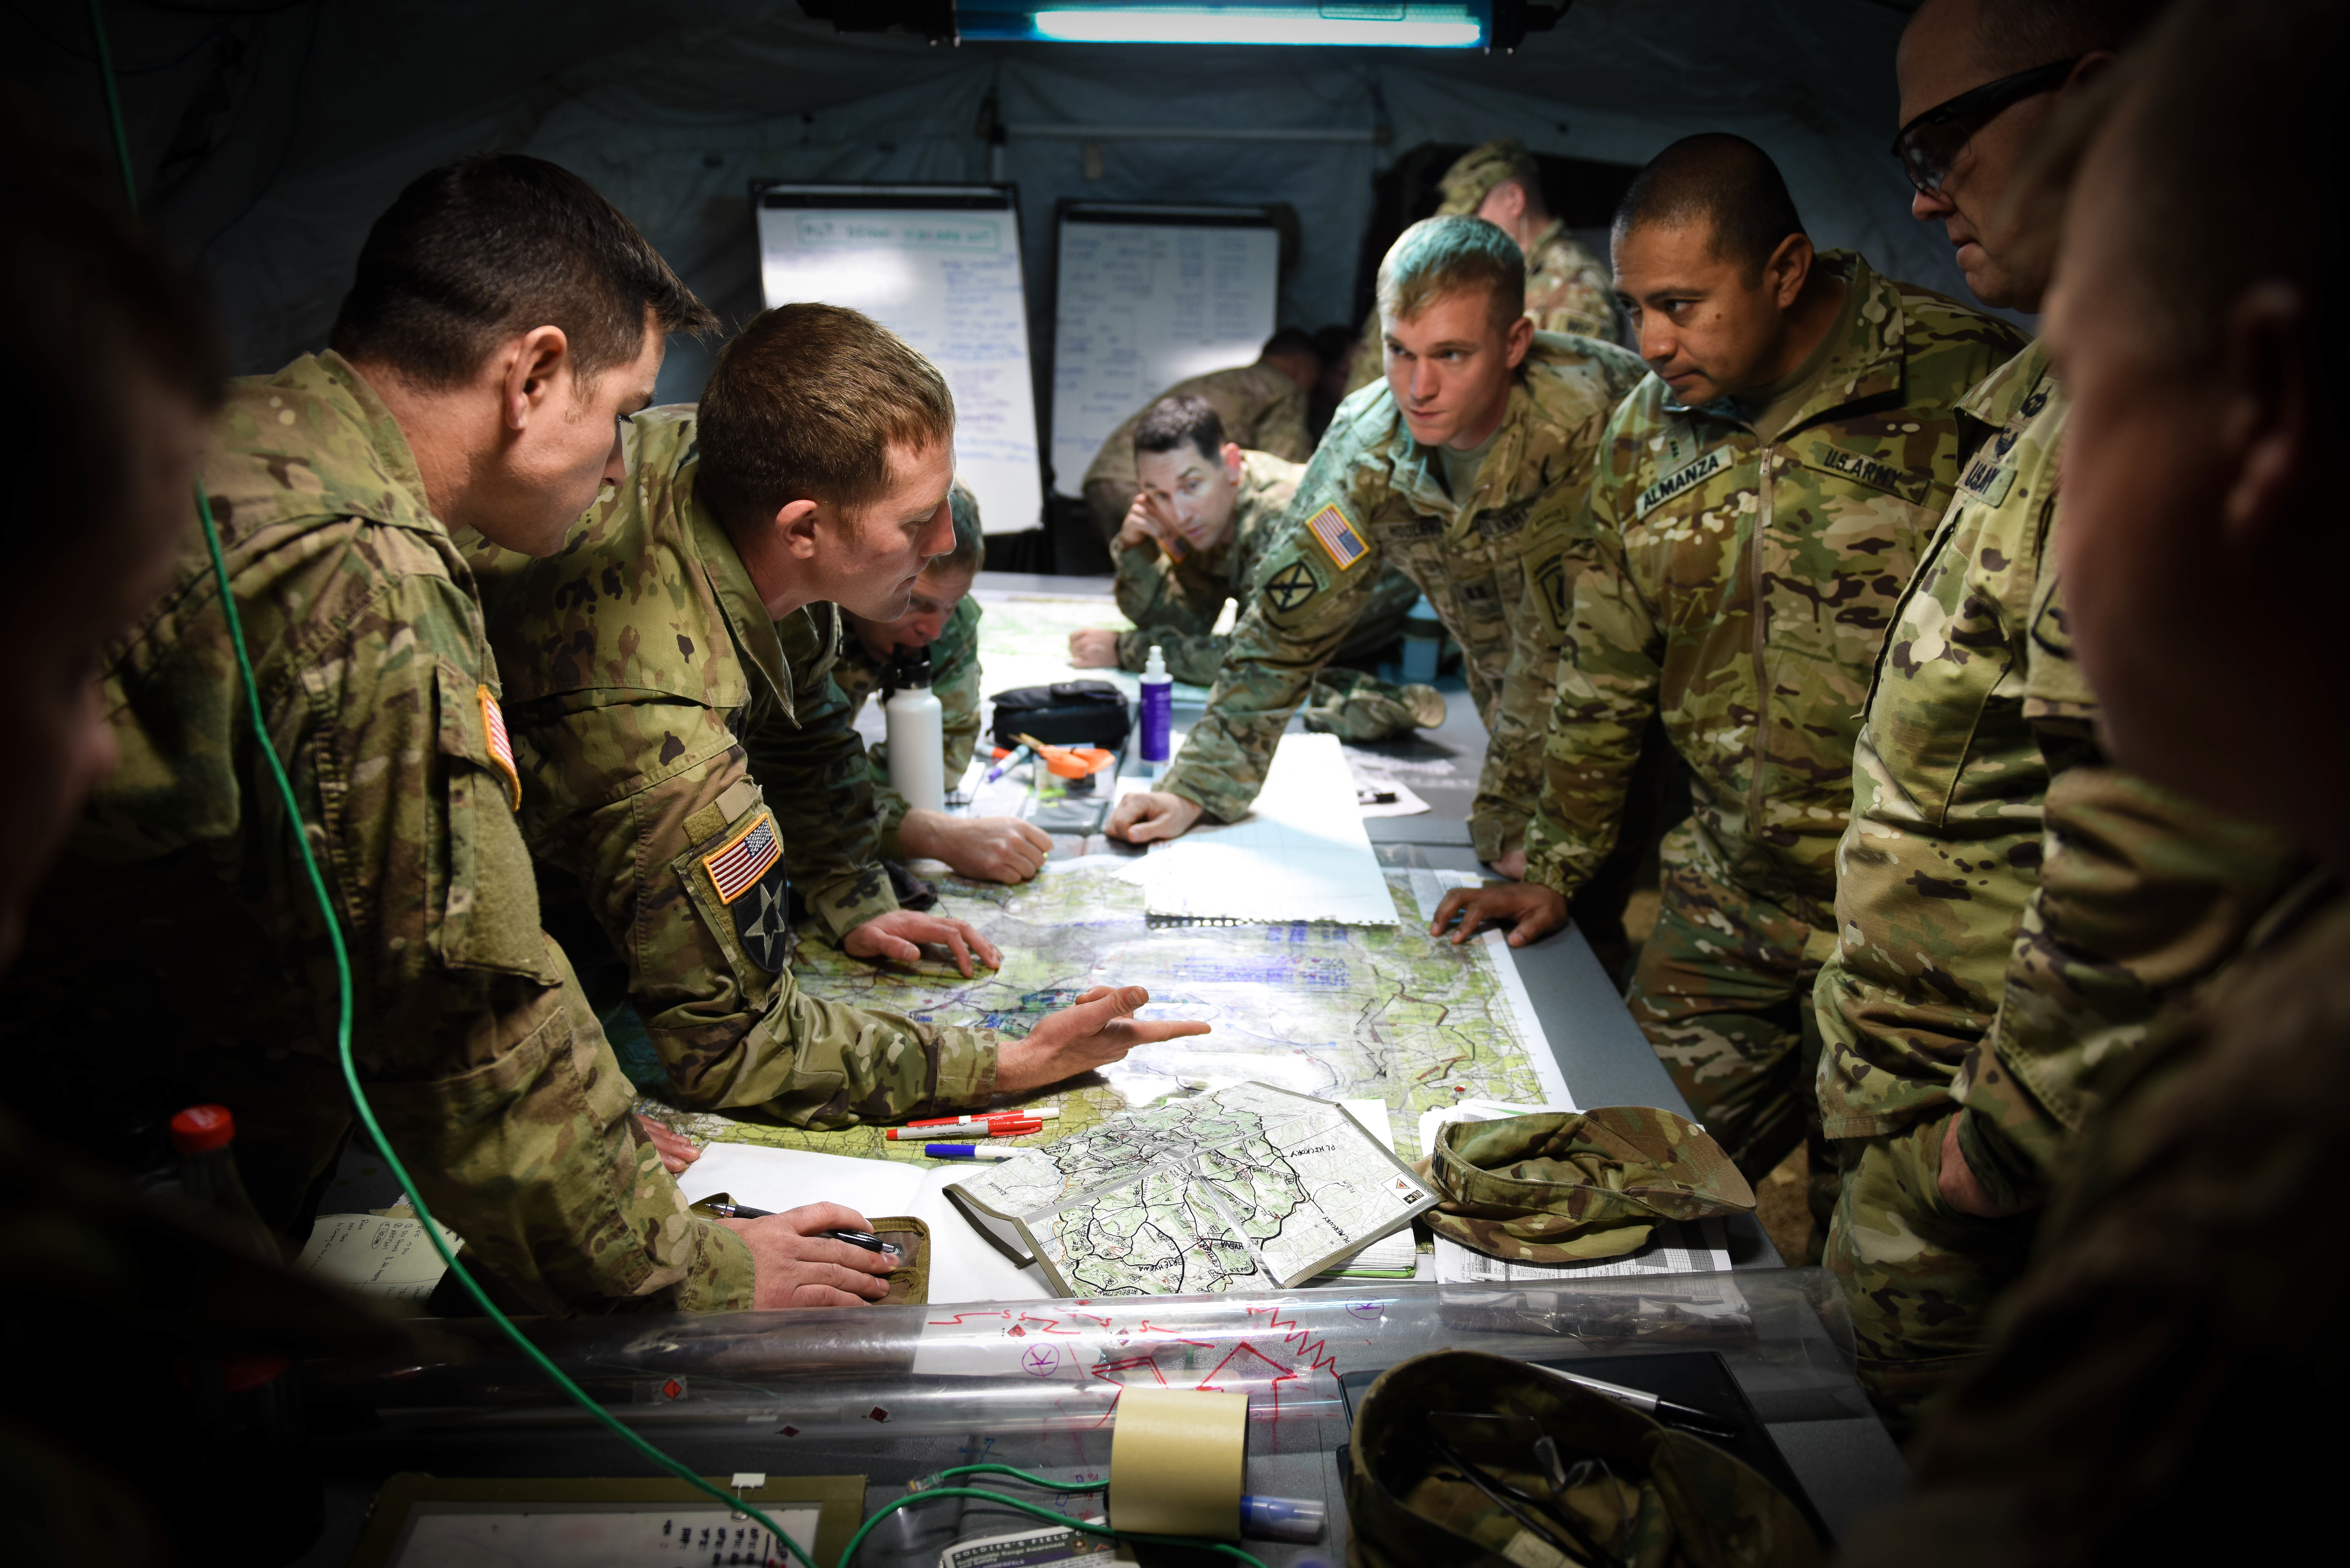 U.S. Army Paratroopers assigned to the 173rd Airborne Brigade plan during exercise Swift Response 17 in Hohenfels, Germany. Swift Response is an annual U.S. Army Europe led exercise focused on allied airborne forces' ability to quickly and effectively respond to crisis situations as an interoperable multi-national team.